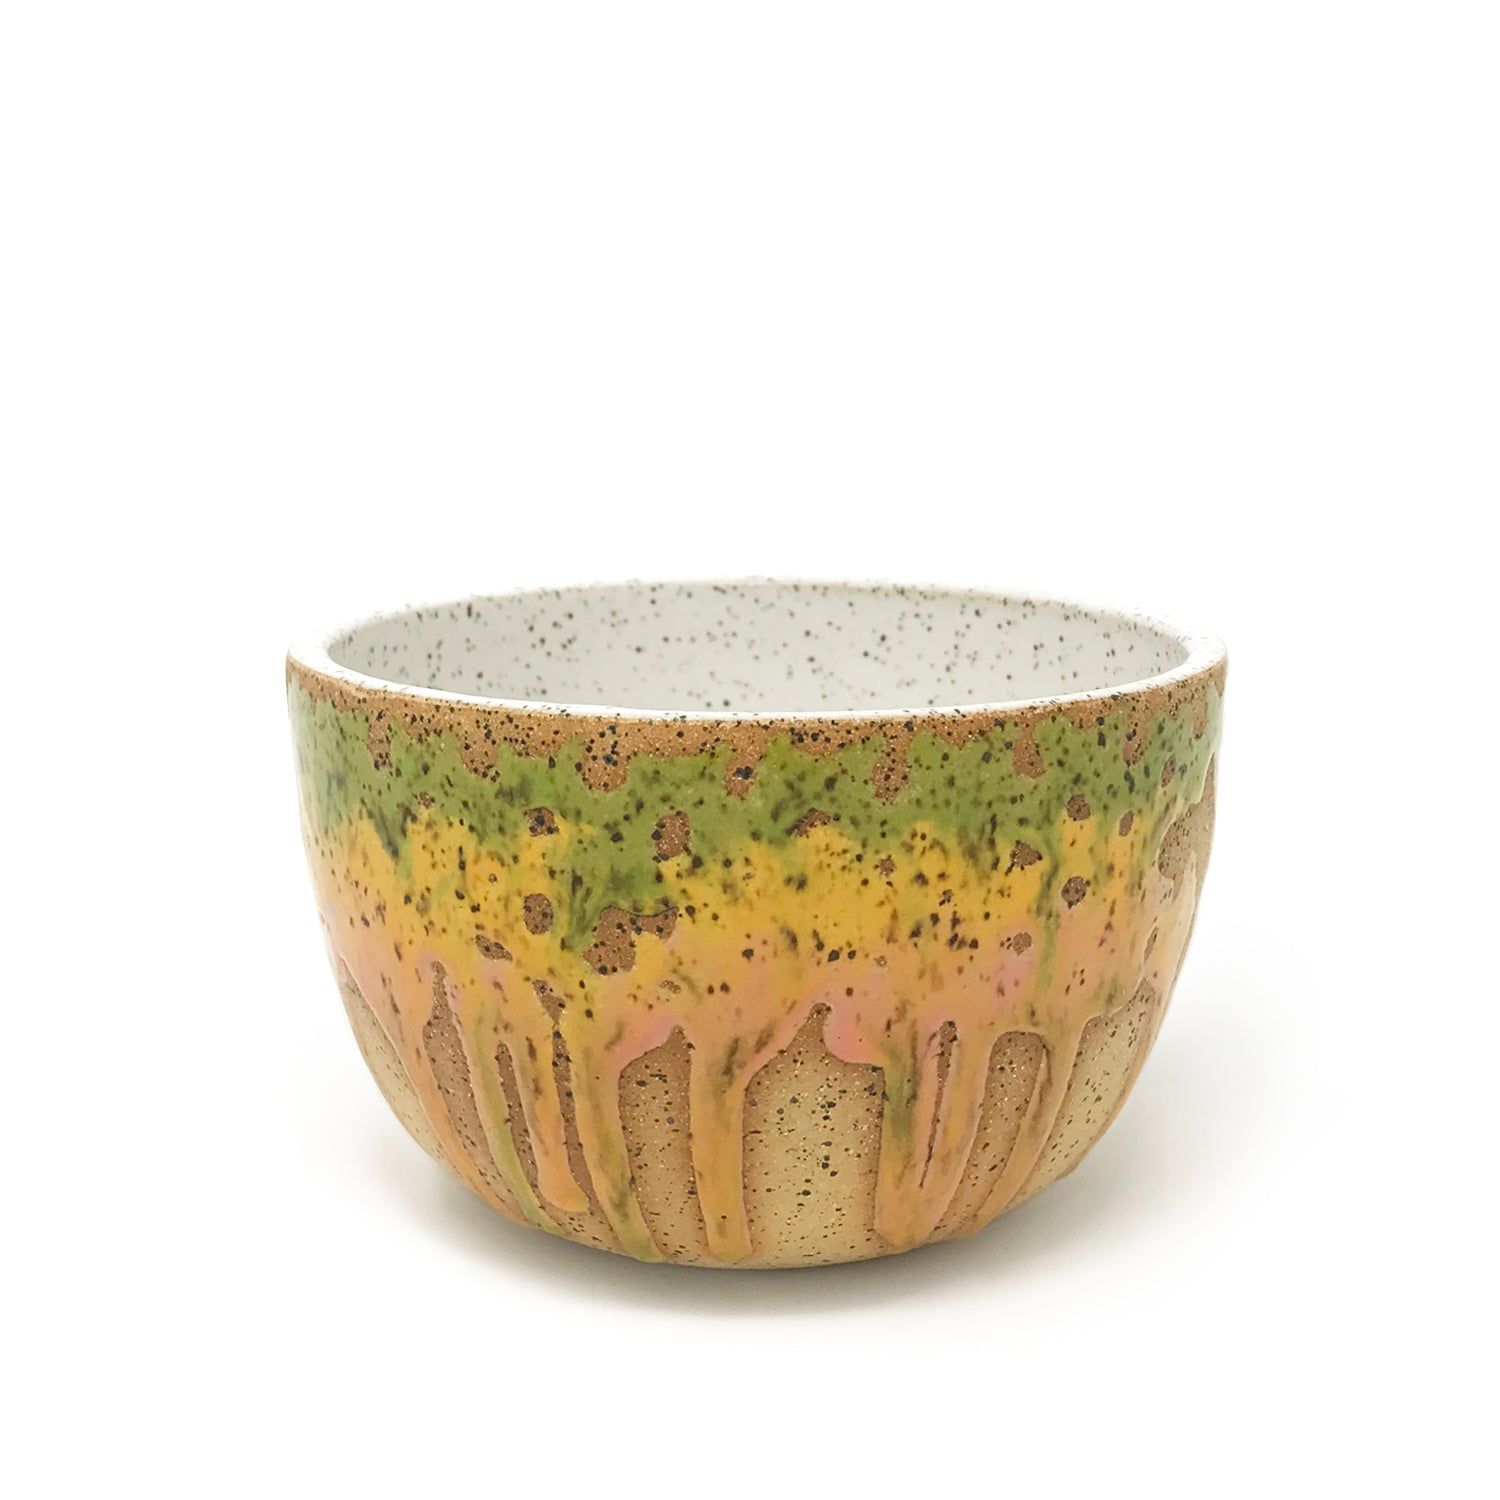 Ceramic bowl on a white background. Glaze colors are green, yellow, pinks with a hint of orange.